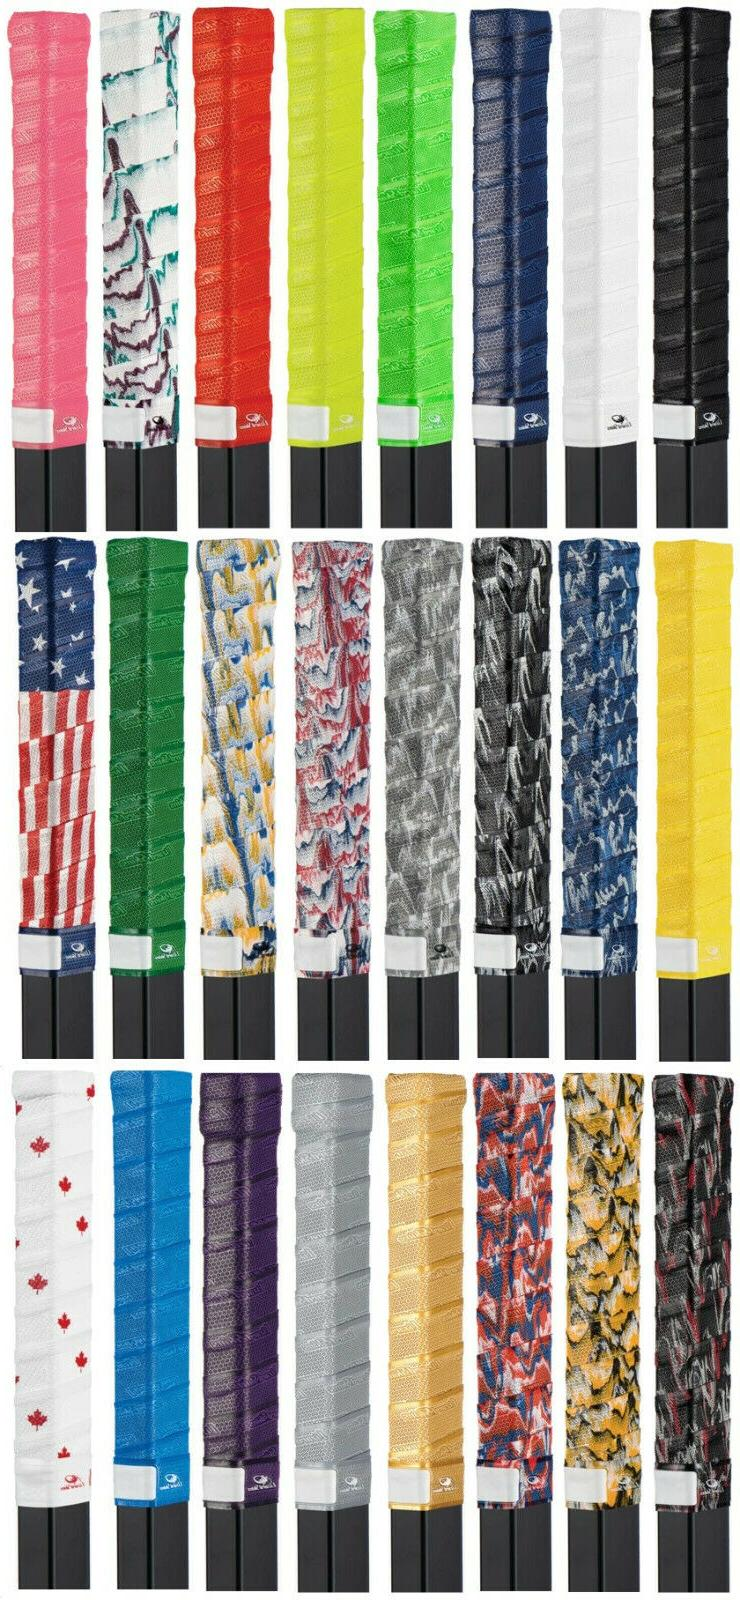 hockey stick handle sticky grip colored dsp